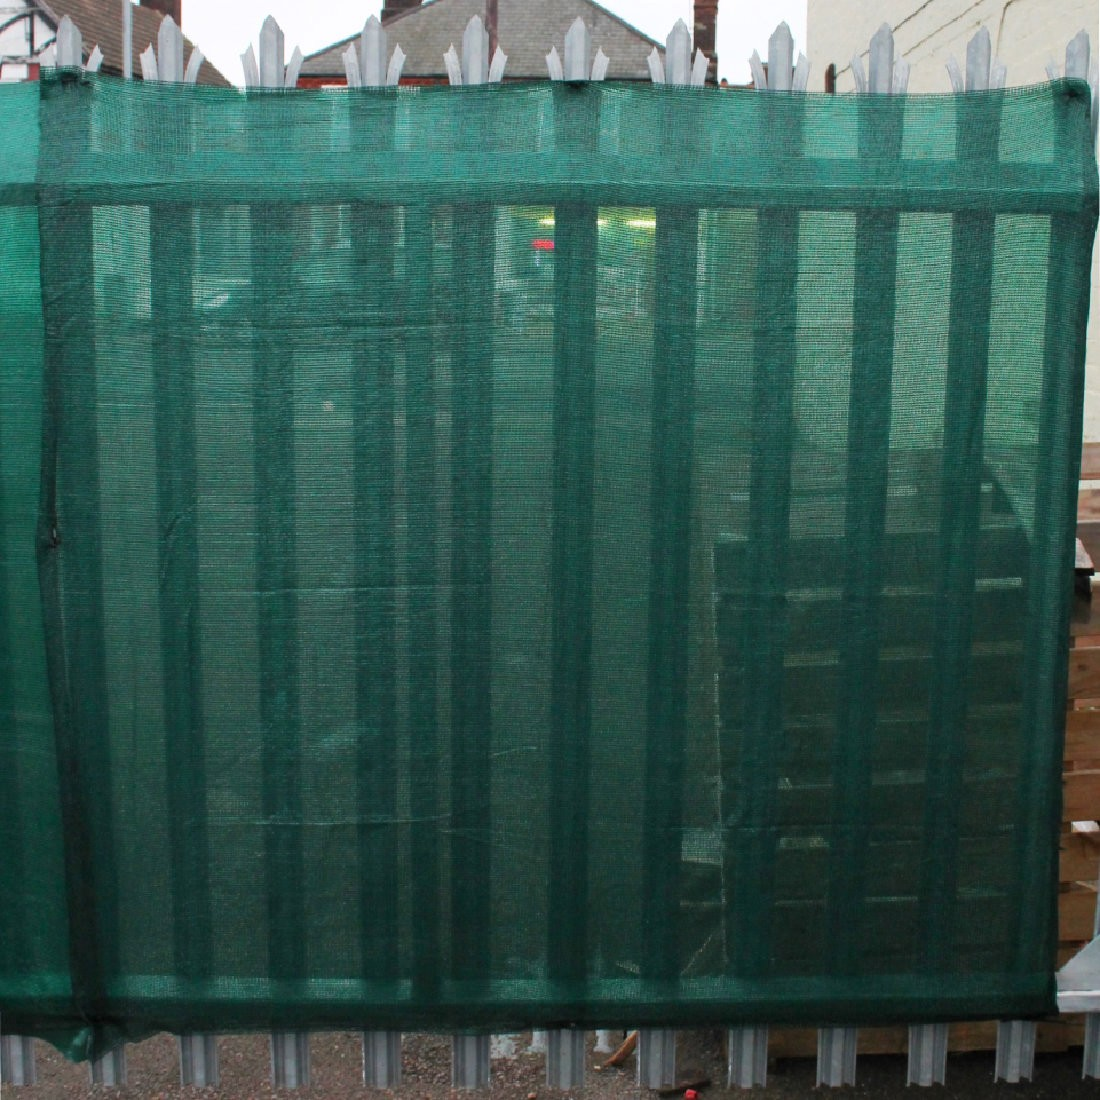 80 T Shade Netting For Privacy